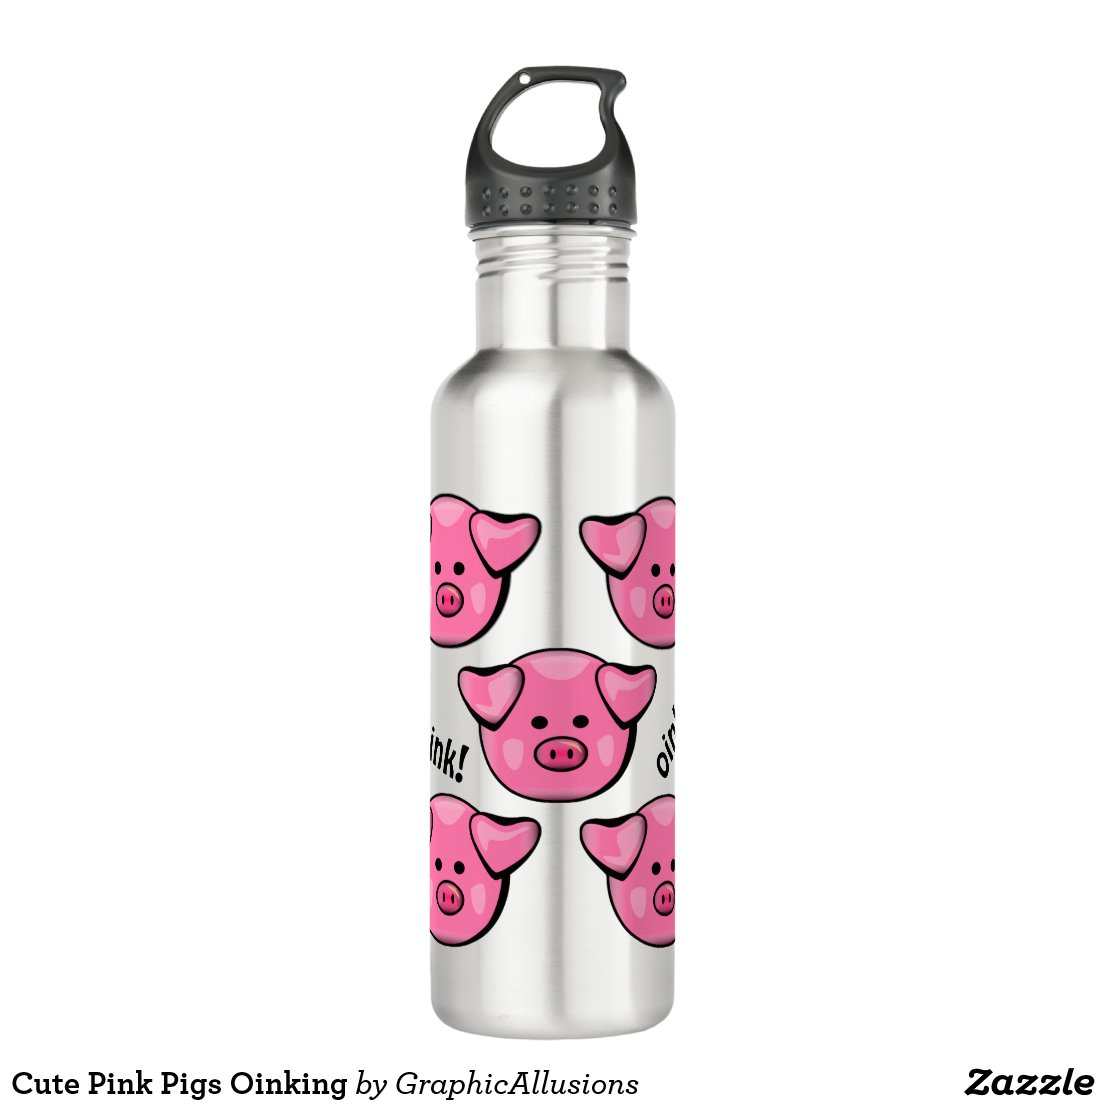 Cute Pink Pigs Oinking Stainless Steel Water Bottle